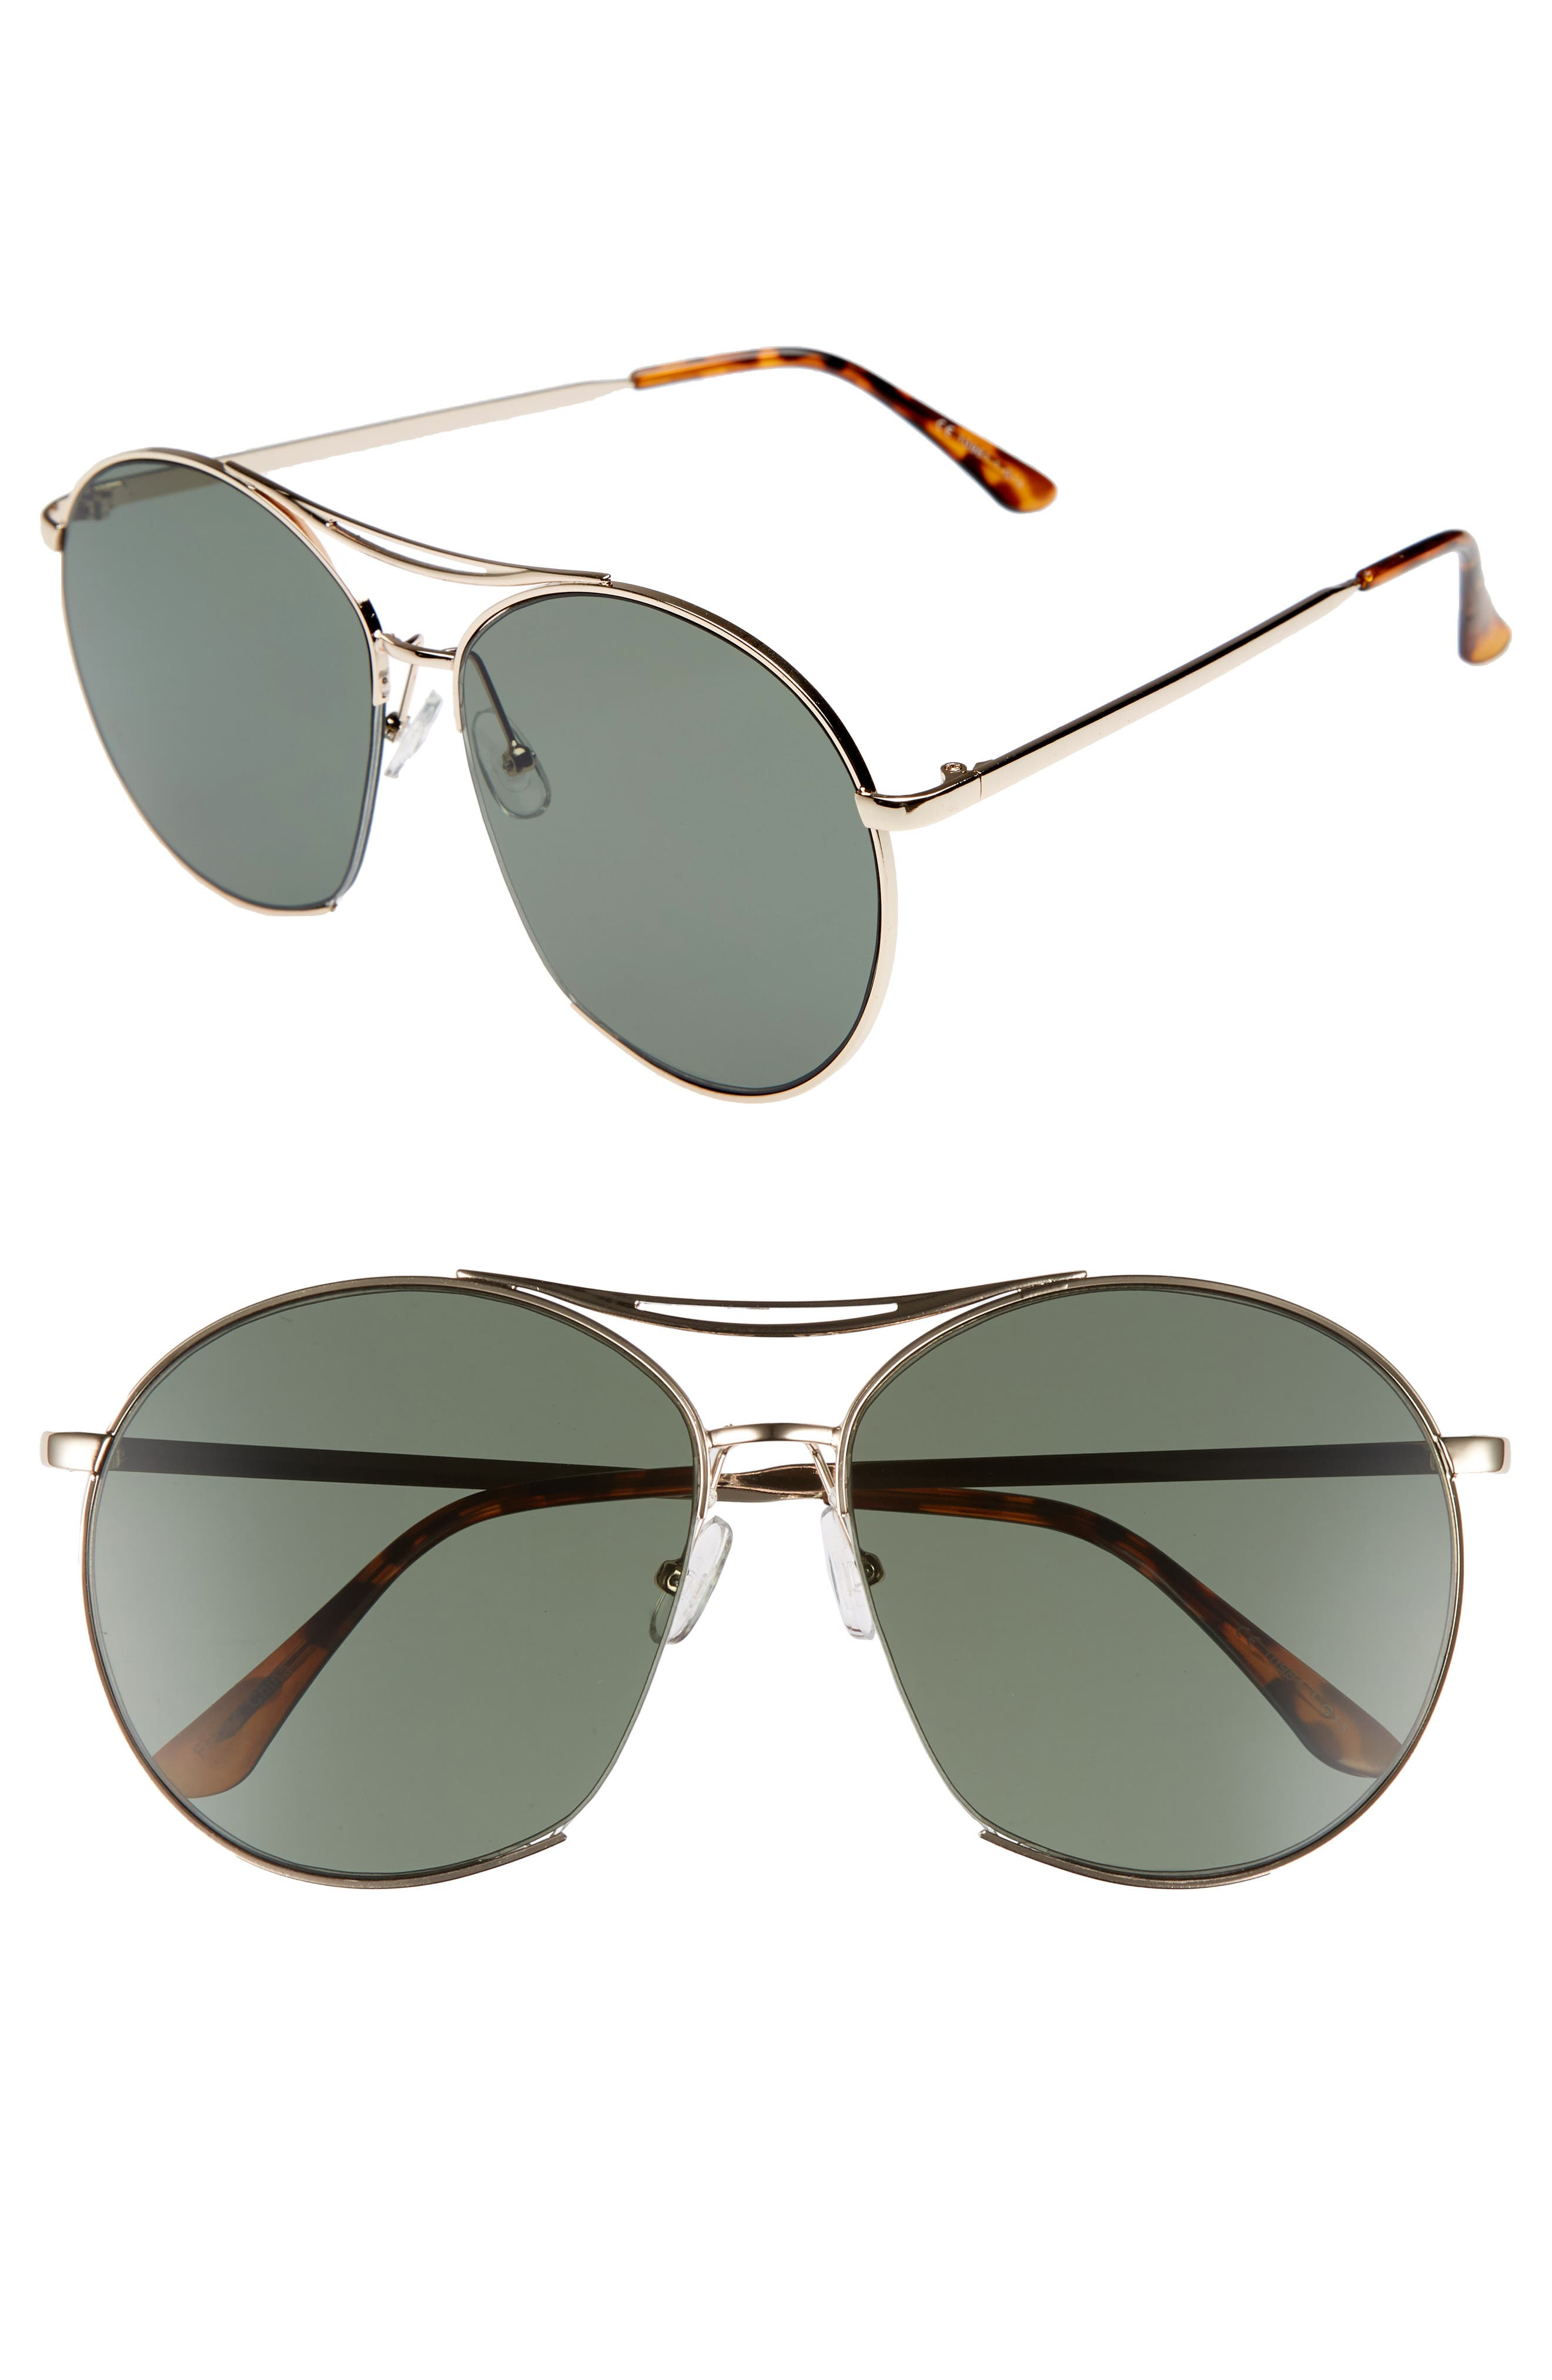 60mm Round Aviator Sunglasses,                         Main,                         color, Gold